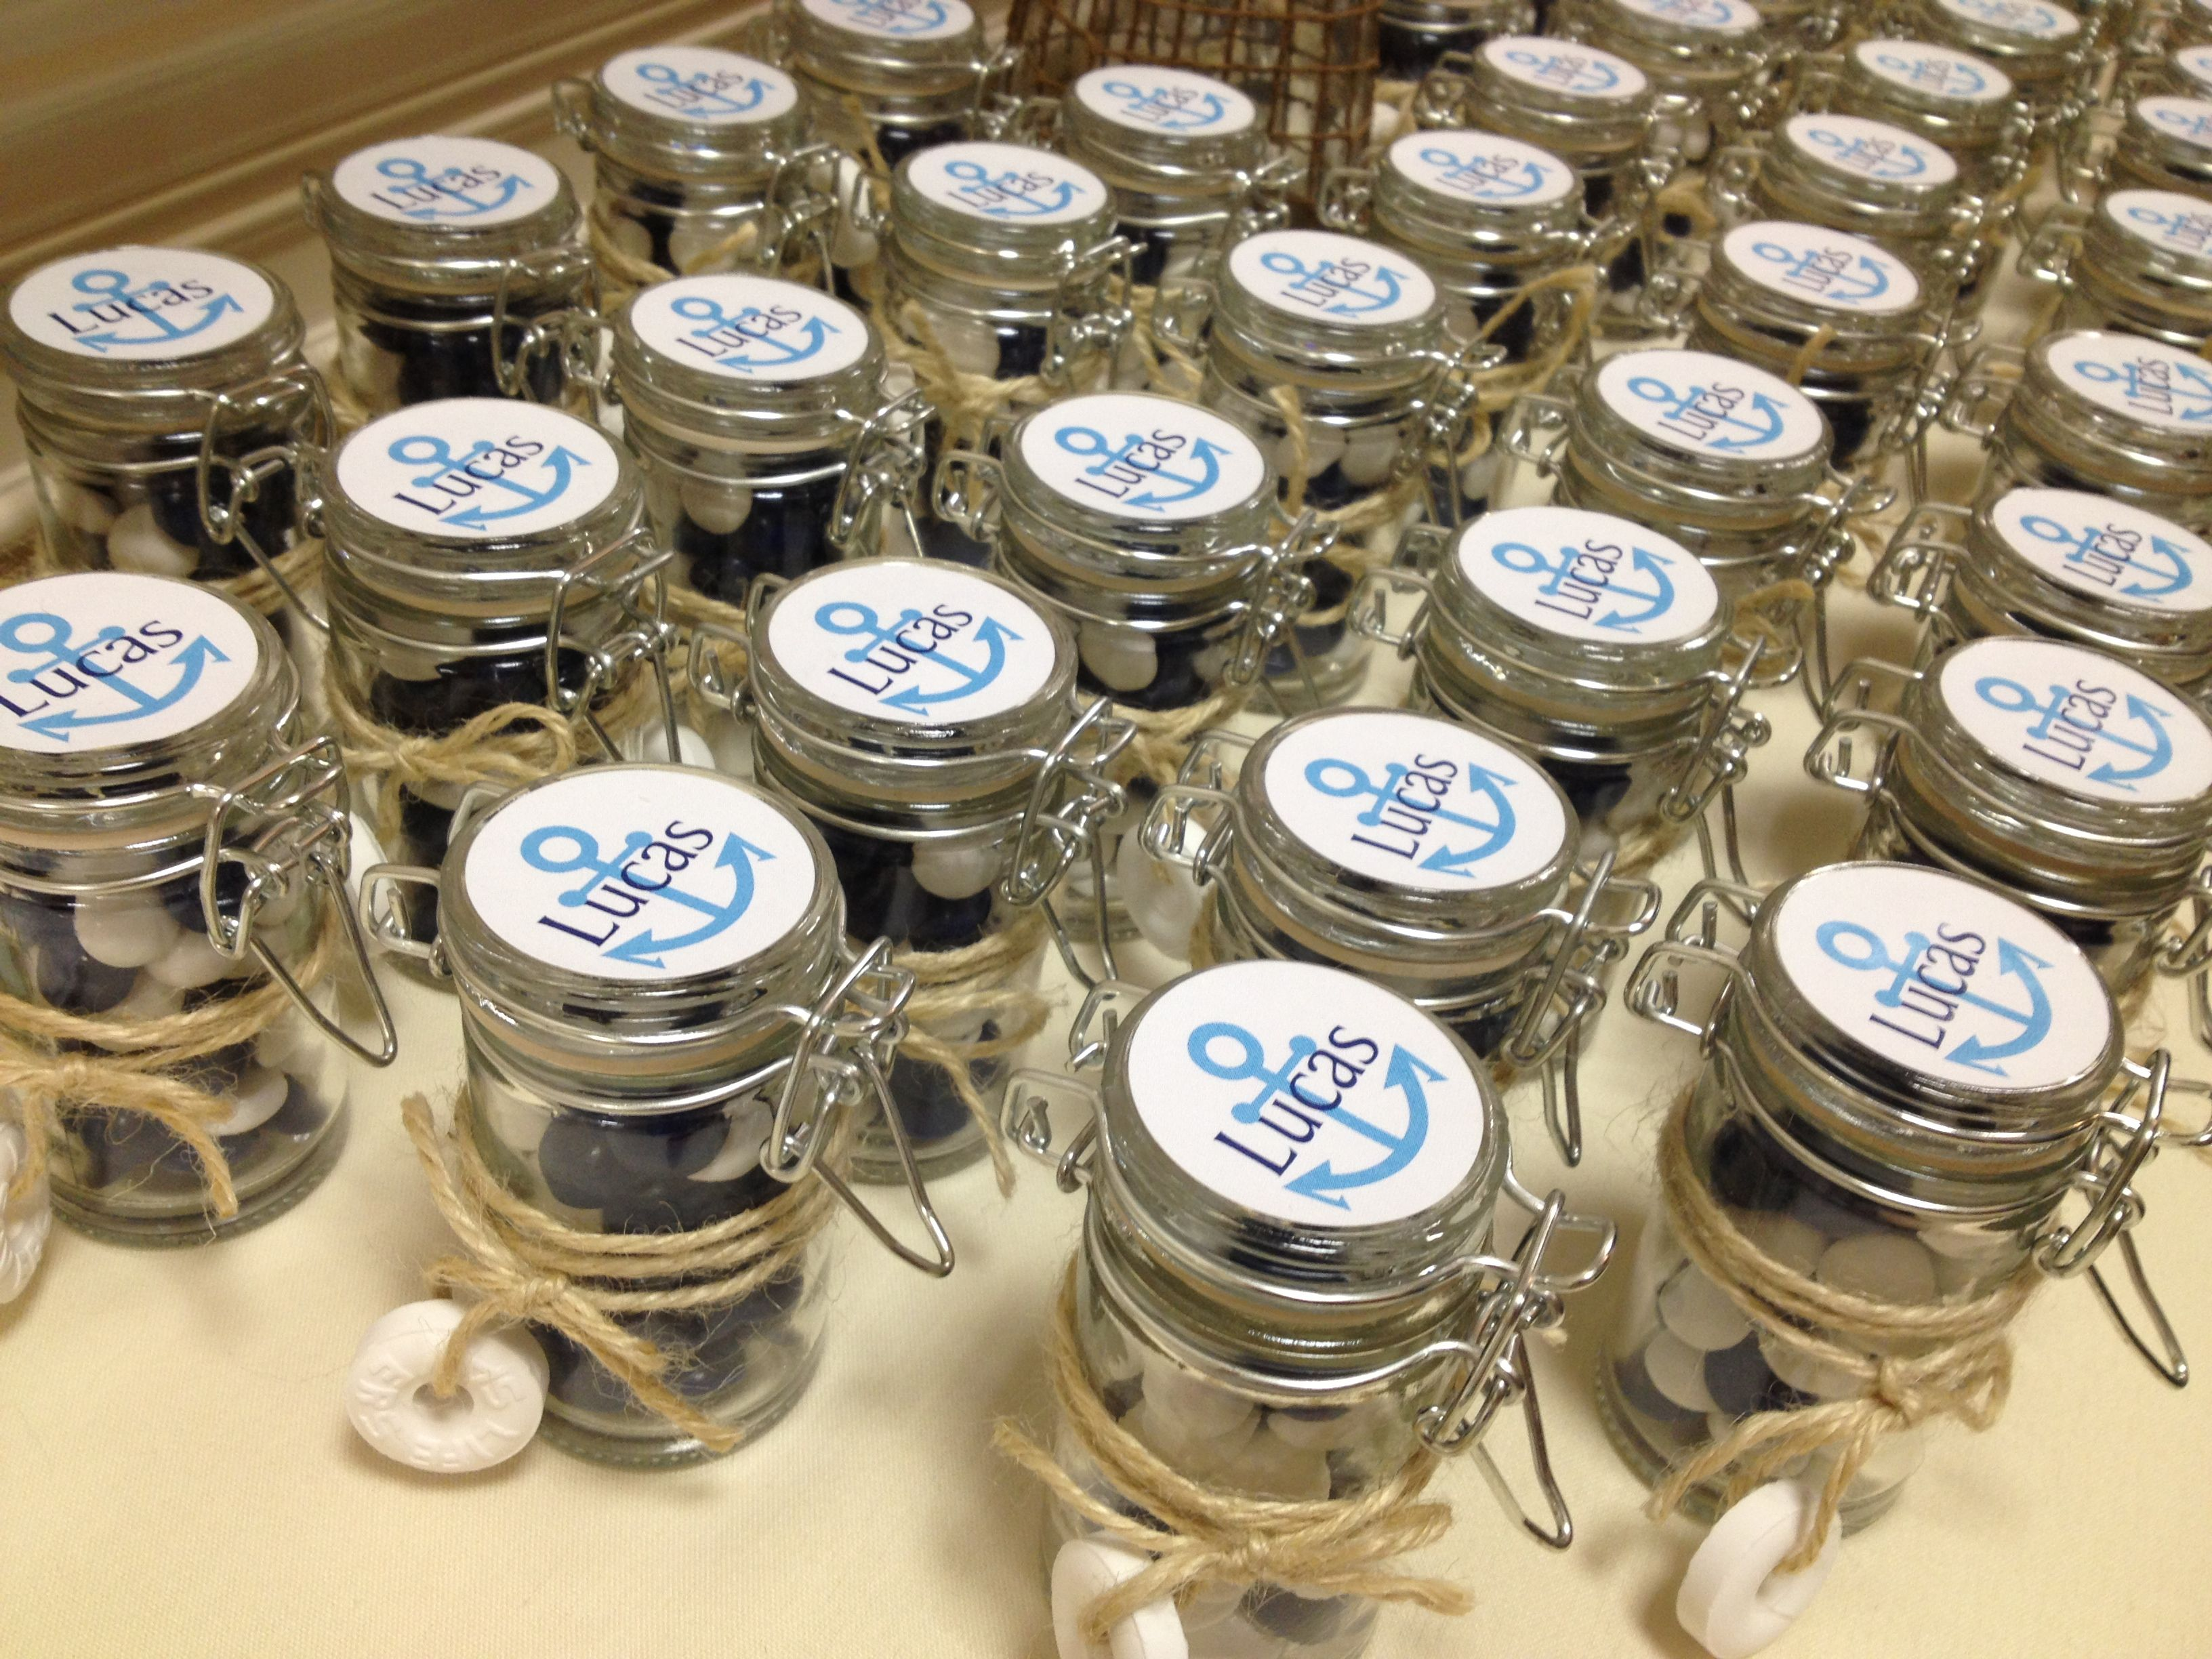 York peppermint patty mms candy jars showering together nautical party souvenirs image not mine negle Image collections